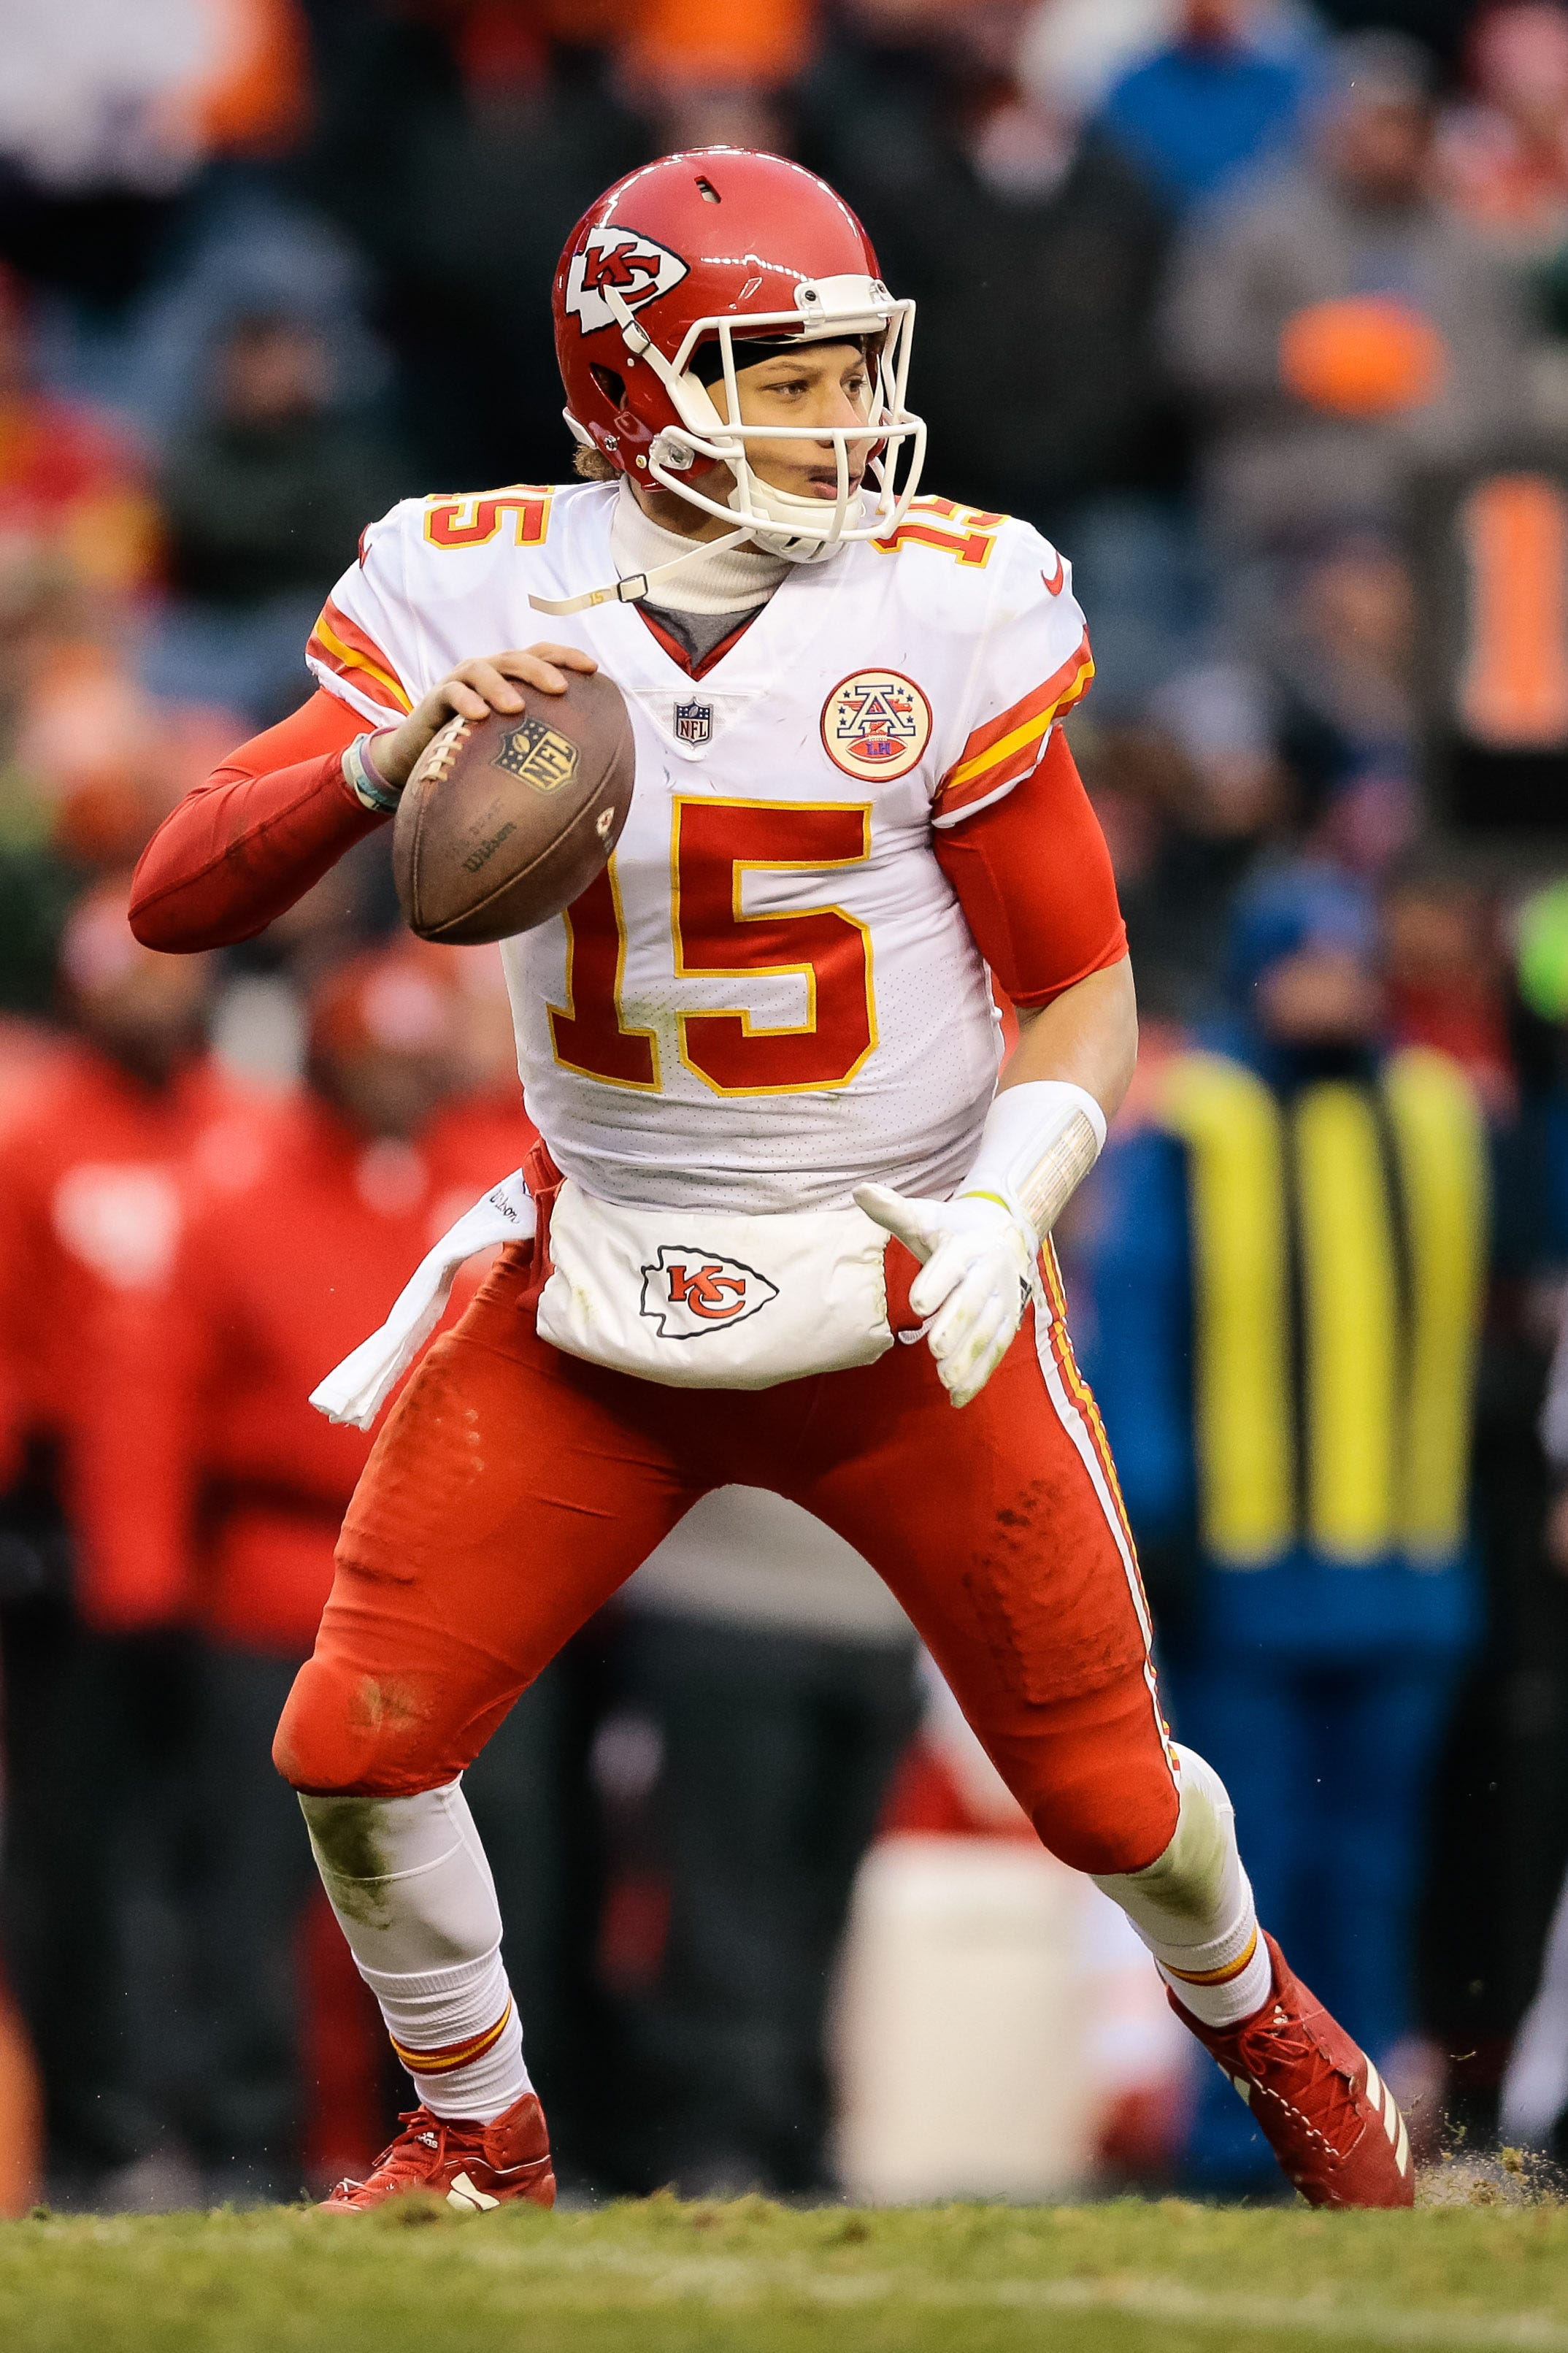 Chiefs QB Patrick Mahomes turned down endorsements because he wasn't playing